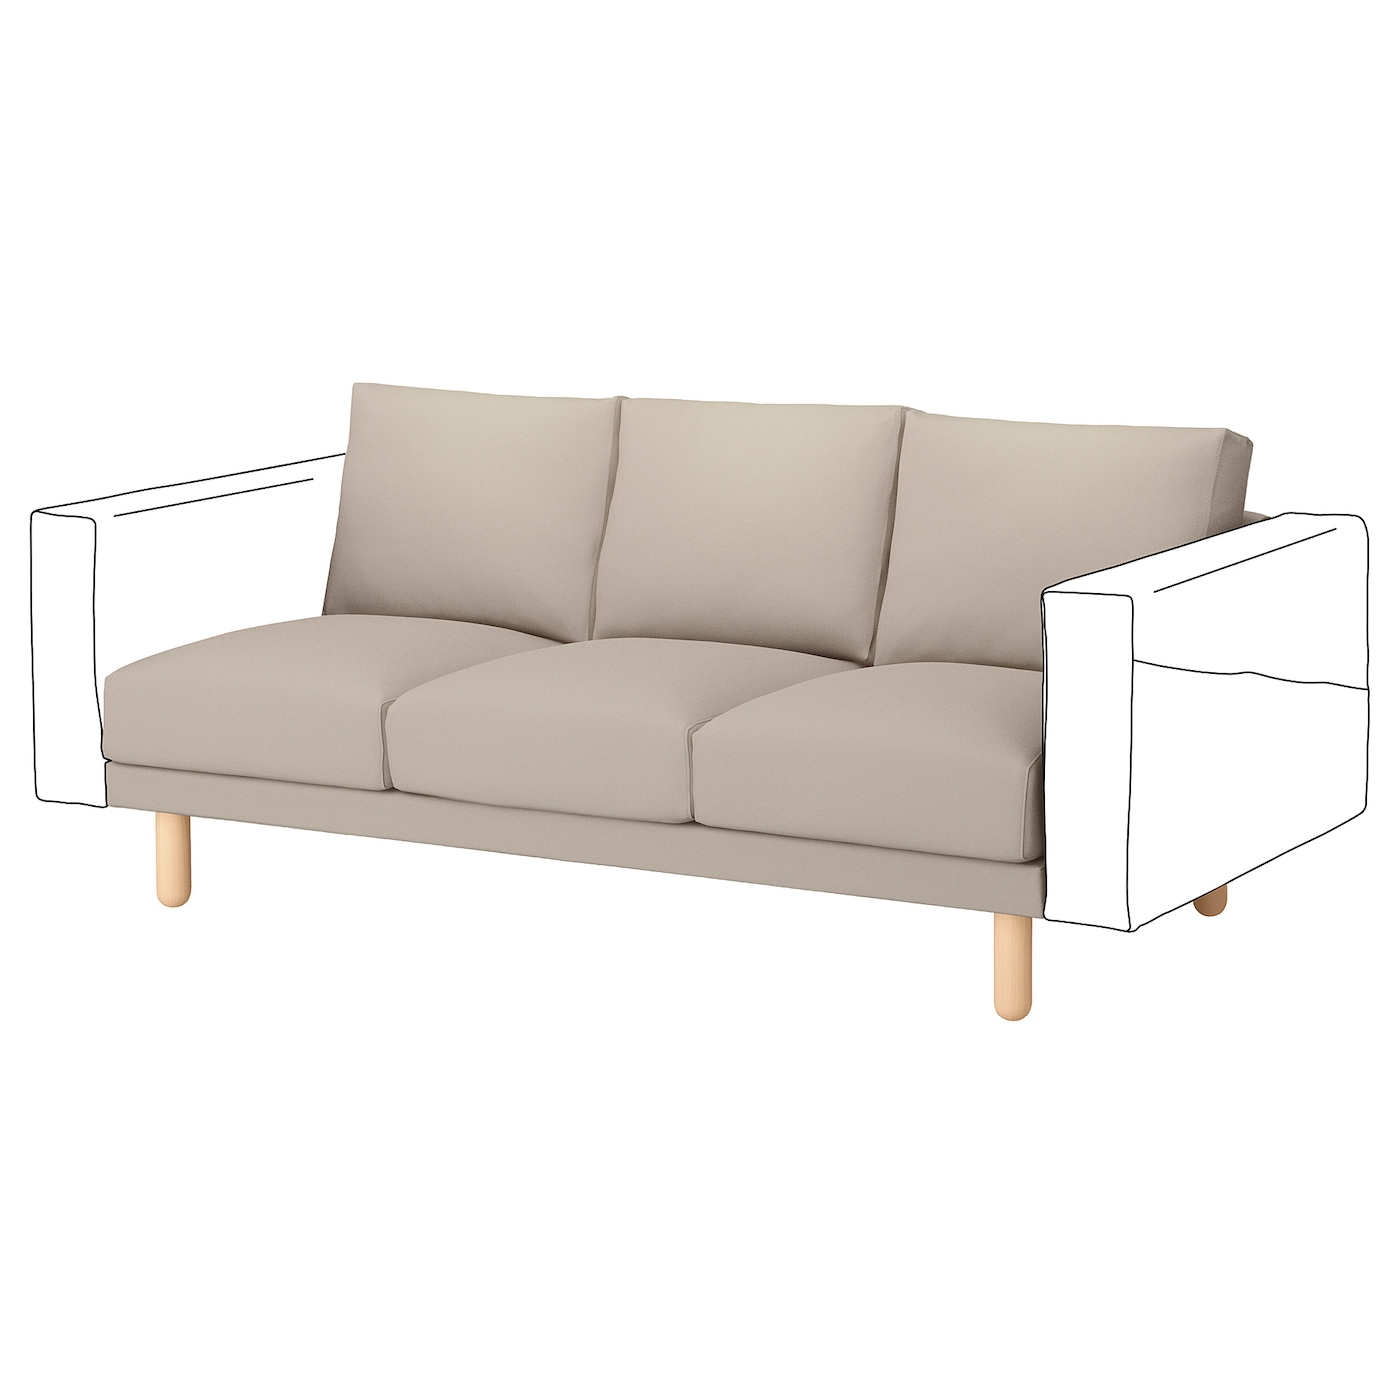 IKEA NORSBORG 3-seat section 10 year guarantee. Read about the terms in the guarantee brochure.